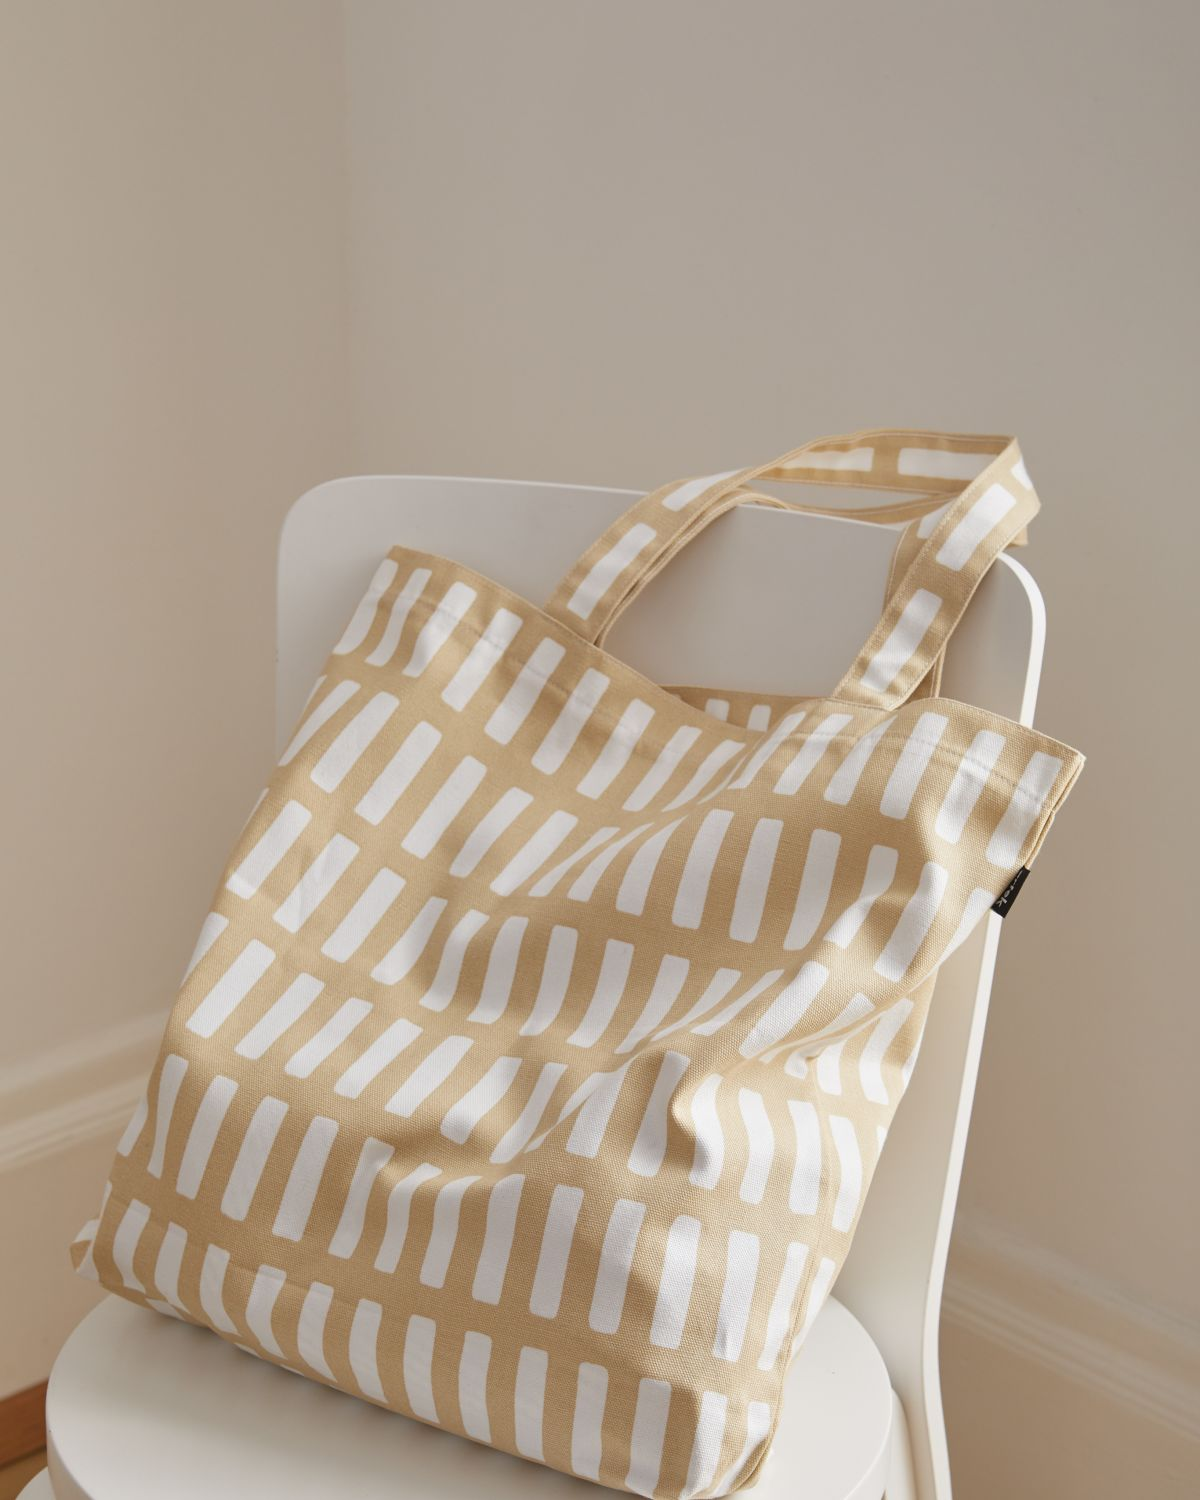 Siena_canvas_bag_sand_white_Chair_66_white